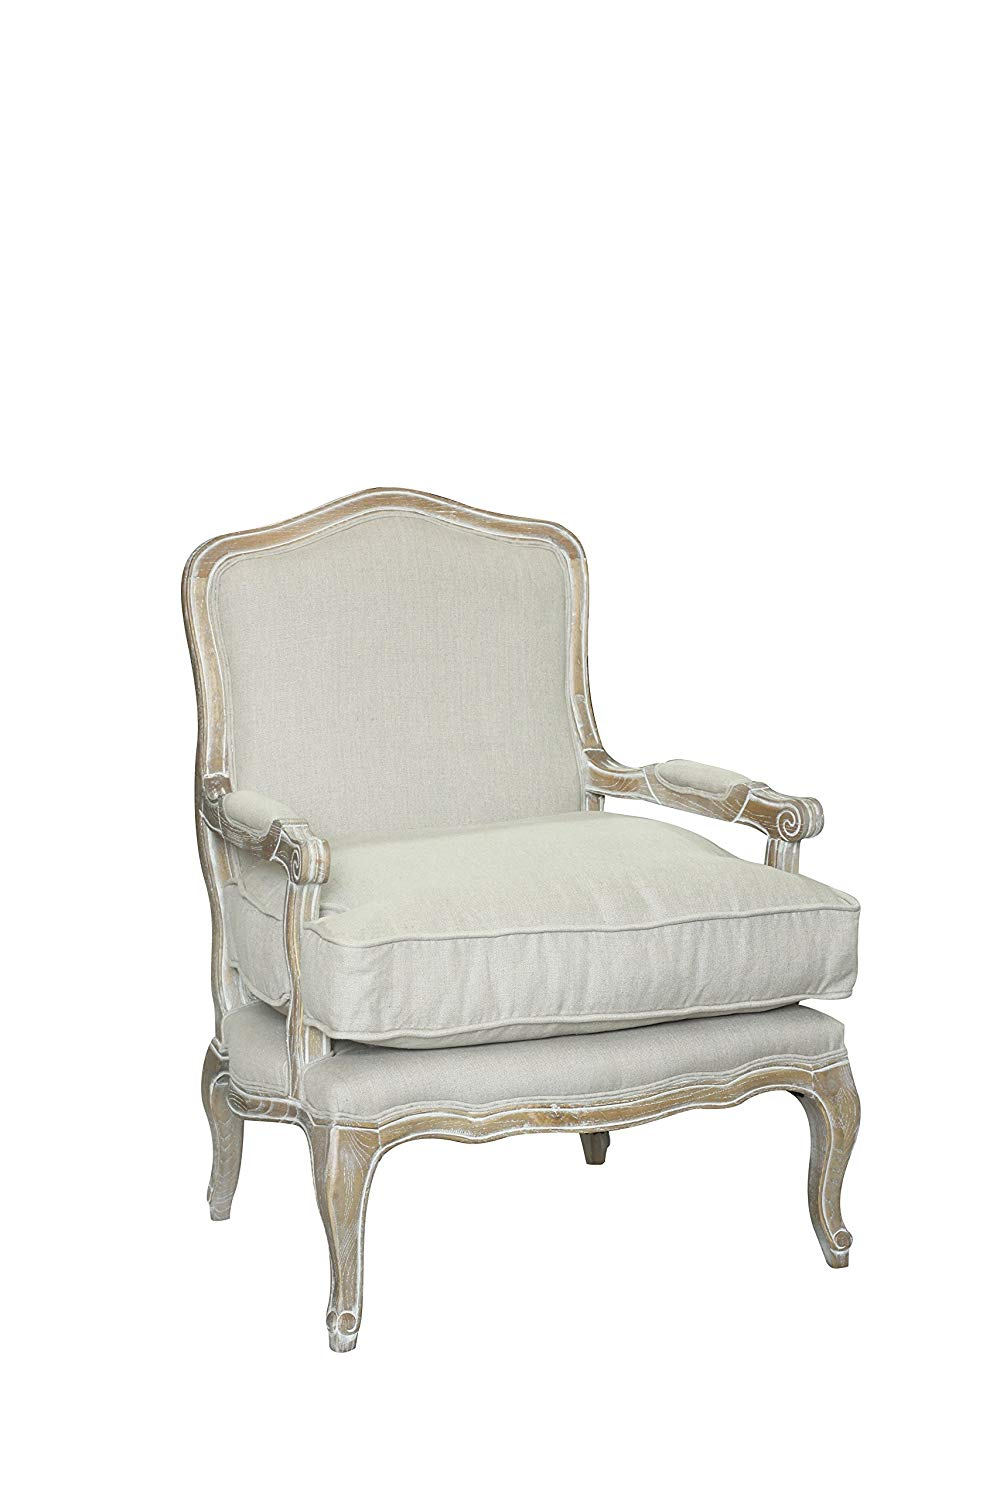 Get Quotations Pangea Home Z Rodney Chair White And Linen Lounge In Fabric